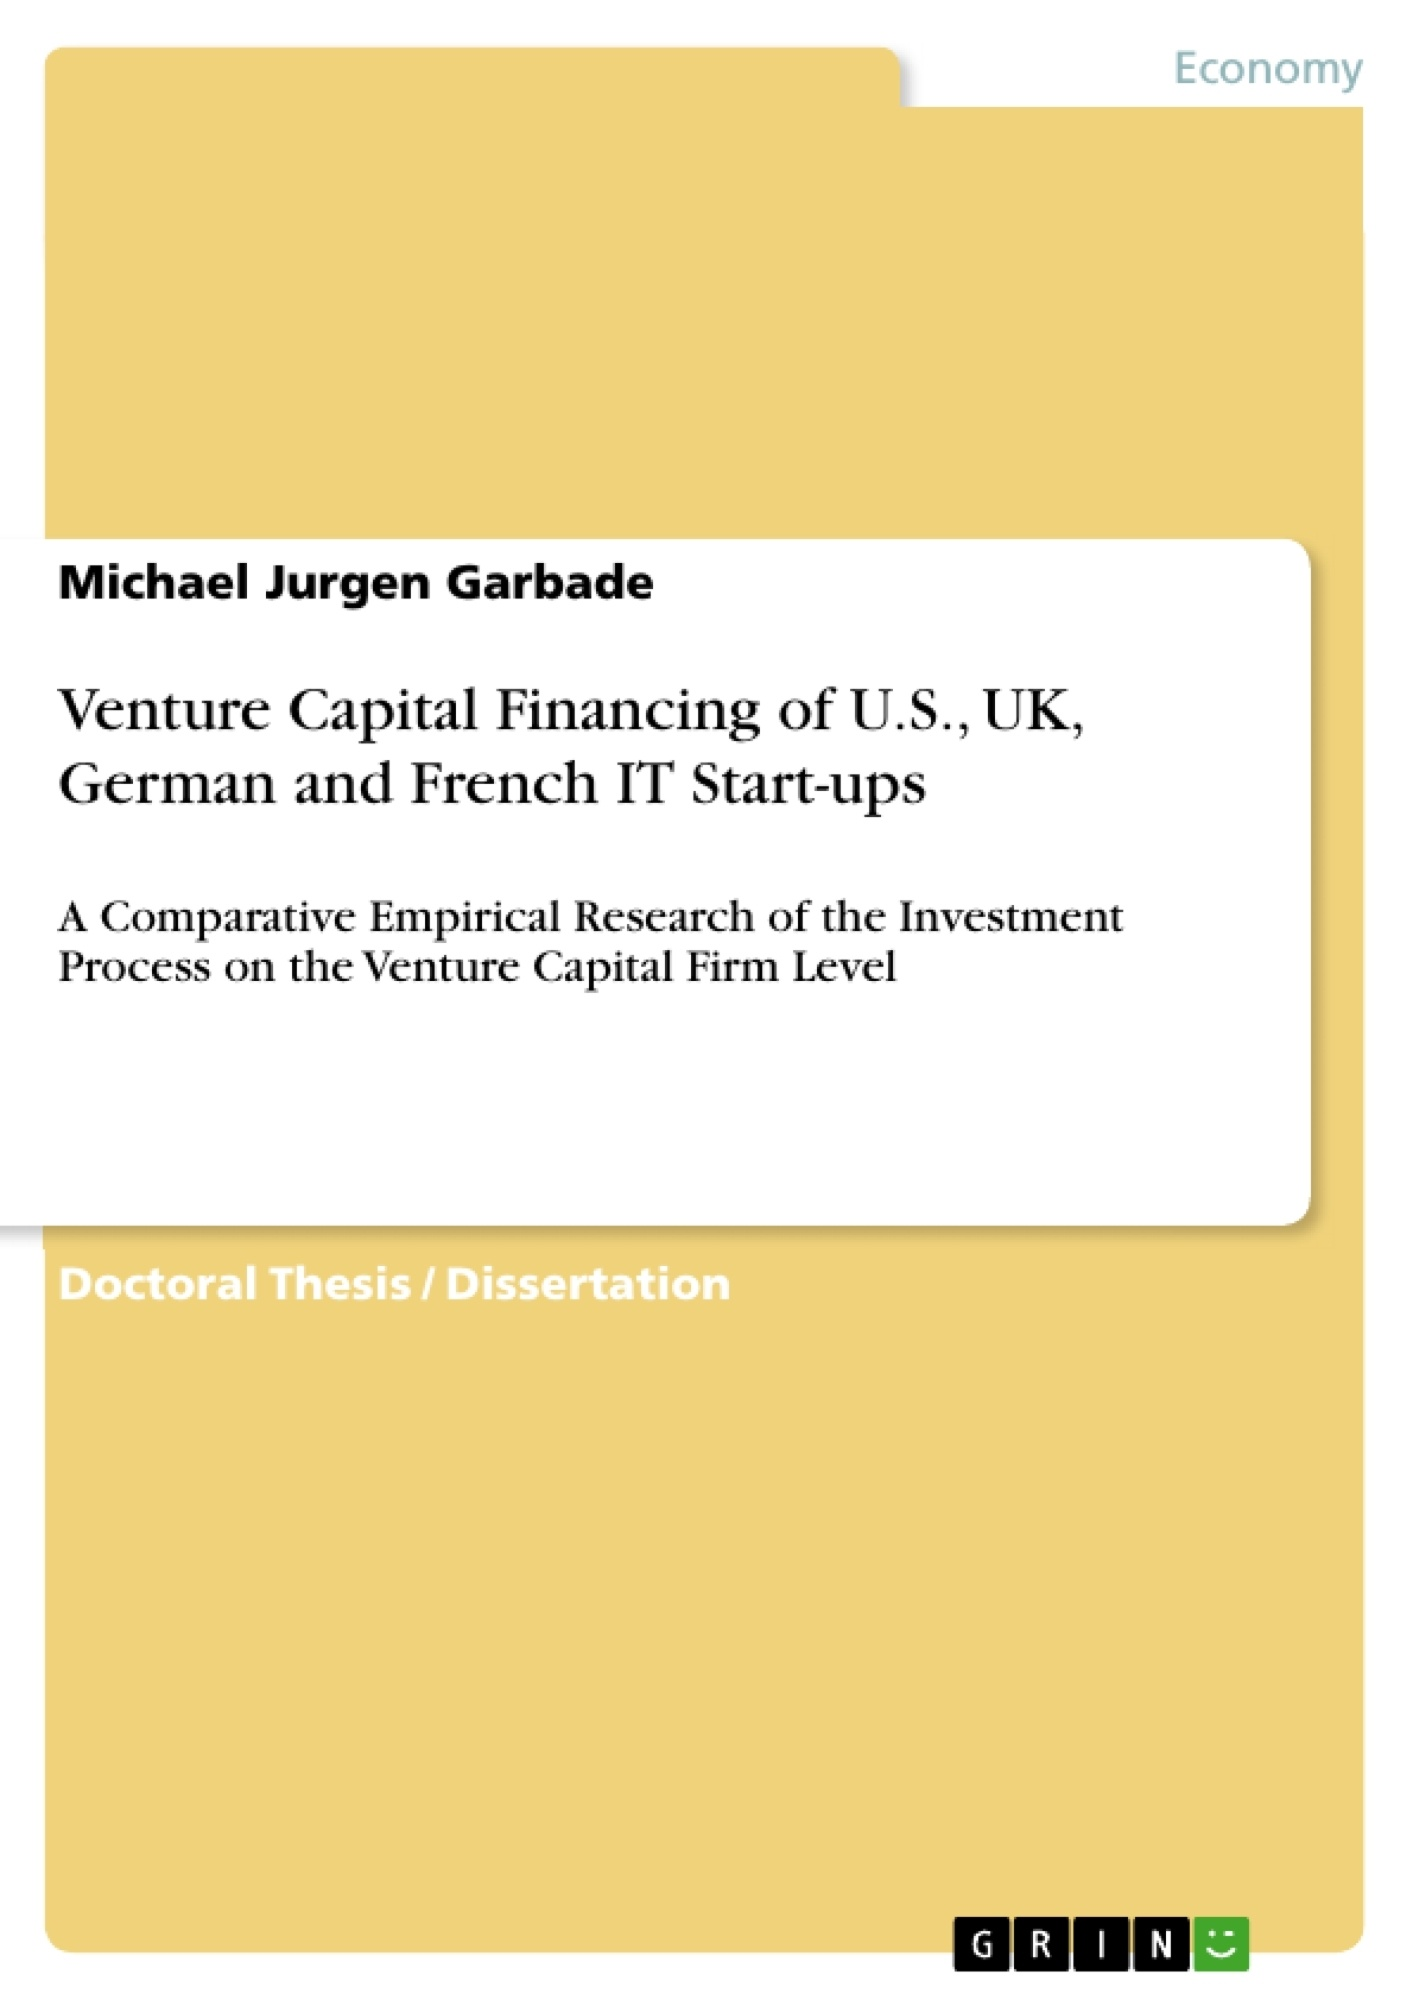 Title: Venture Capital Financing of U.S., UK, German and French  IT Start-ups